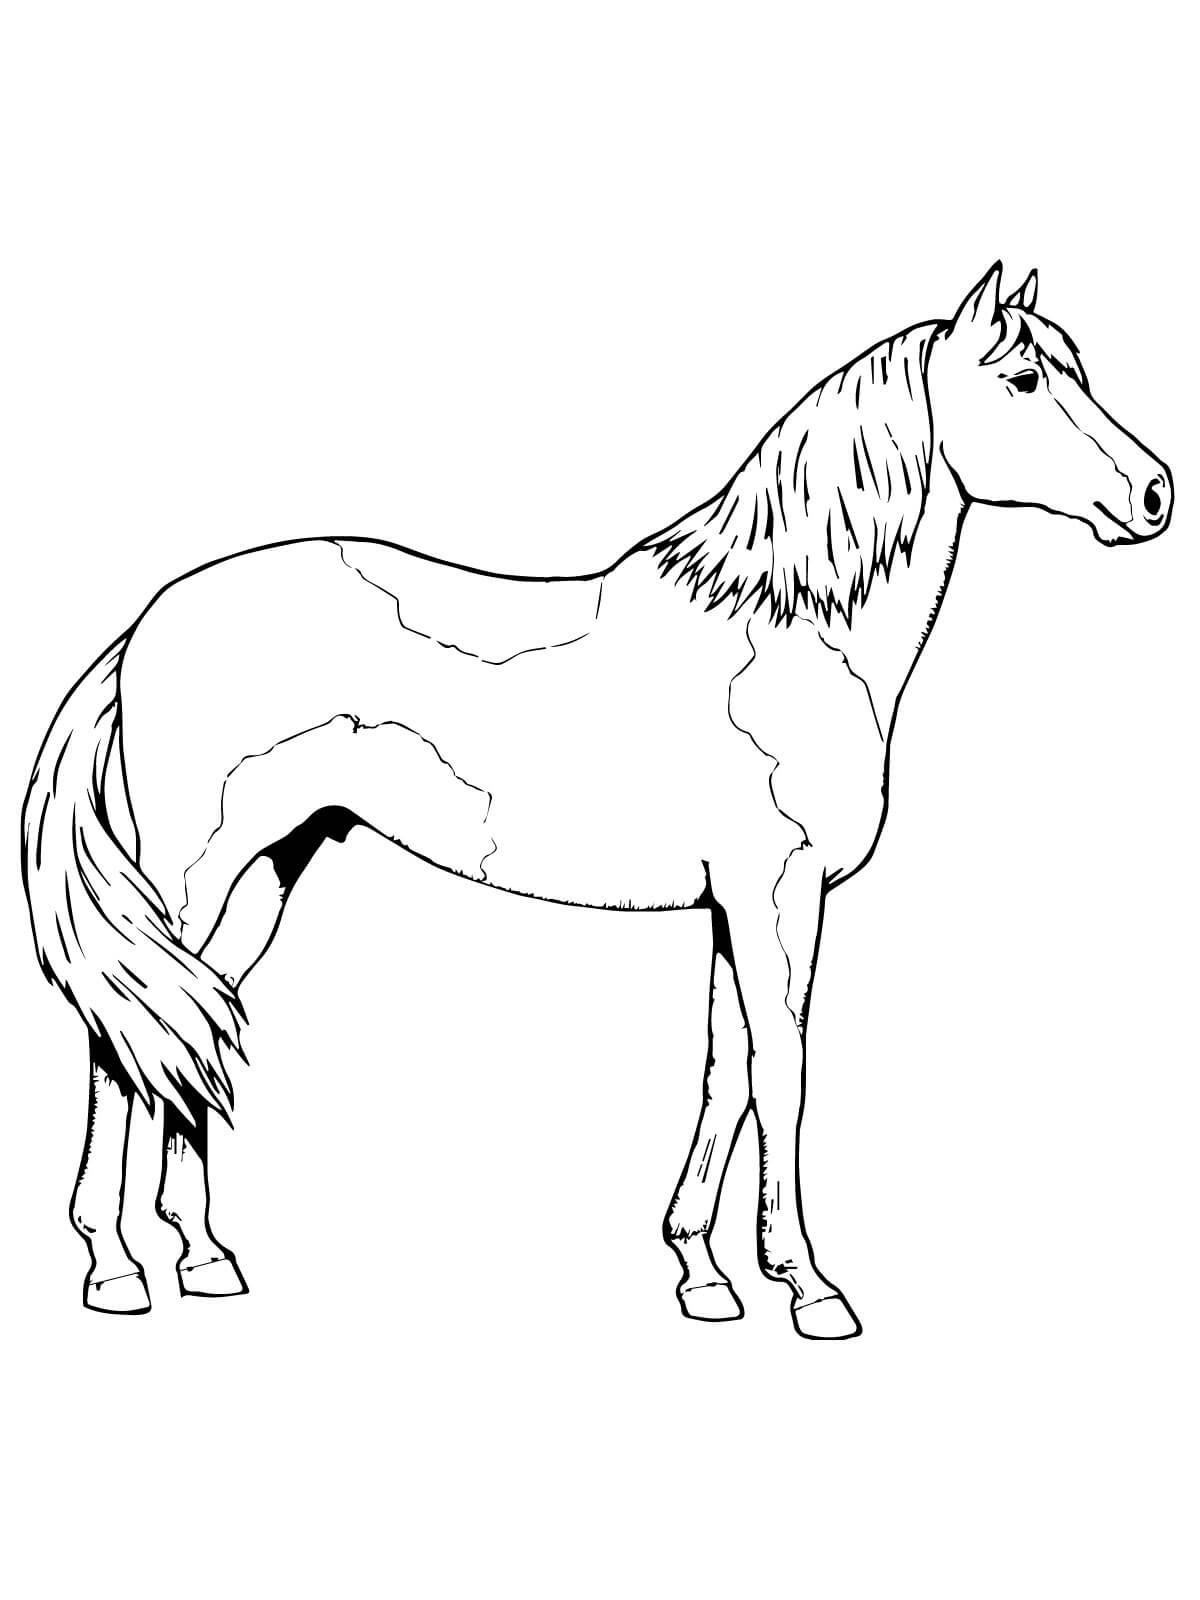 pictures of horses to colour in horse coloring pages for kids coloring pages for kids of colour horses to in pictures